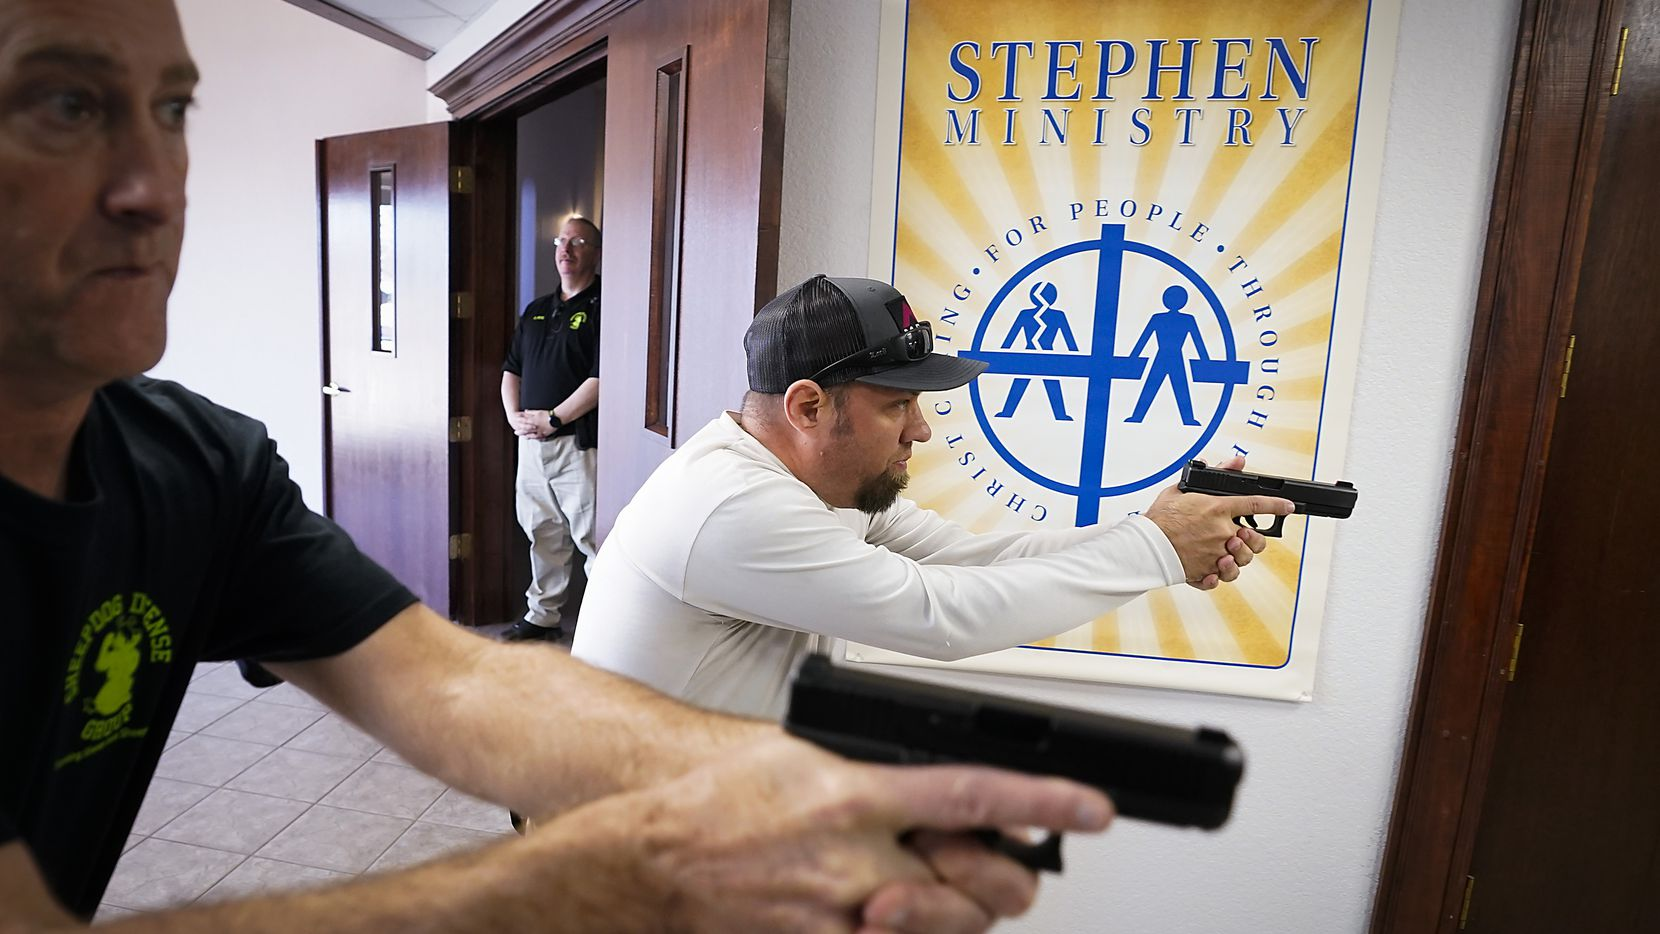 Jason Johnston, from Fellowship of the Parks Church in Grapevine (right), and  Les Davis, from Creek Church in Saginaw, practice searching and clearing a hallway during a Sheepdog Defense Group armed security programs church safety training session at Cornerstone Community Church on Sunday, Feb. 2, 2020 in Springtown, Texas.